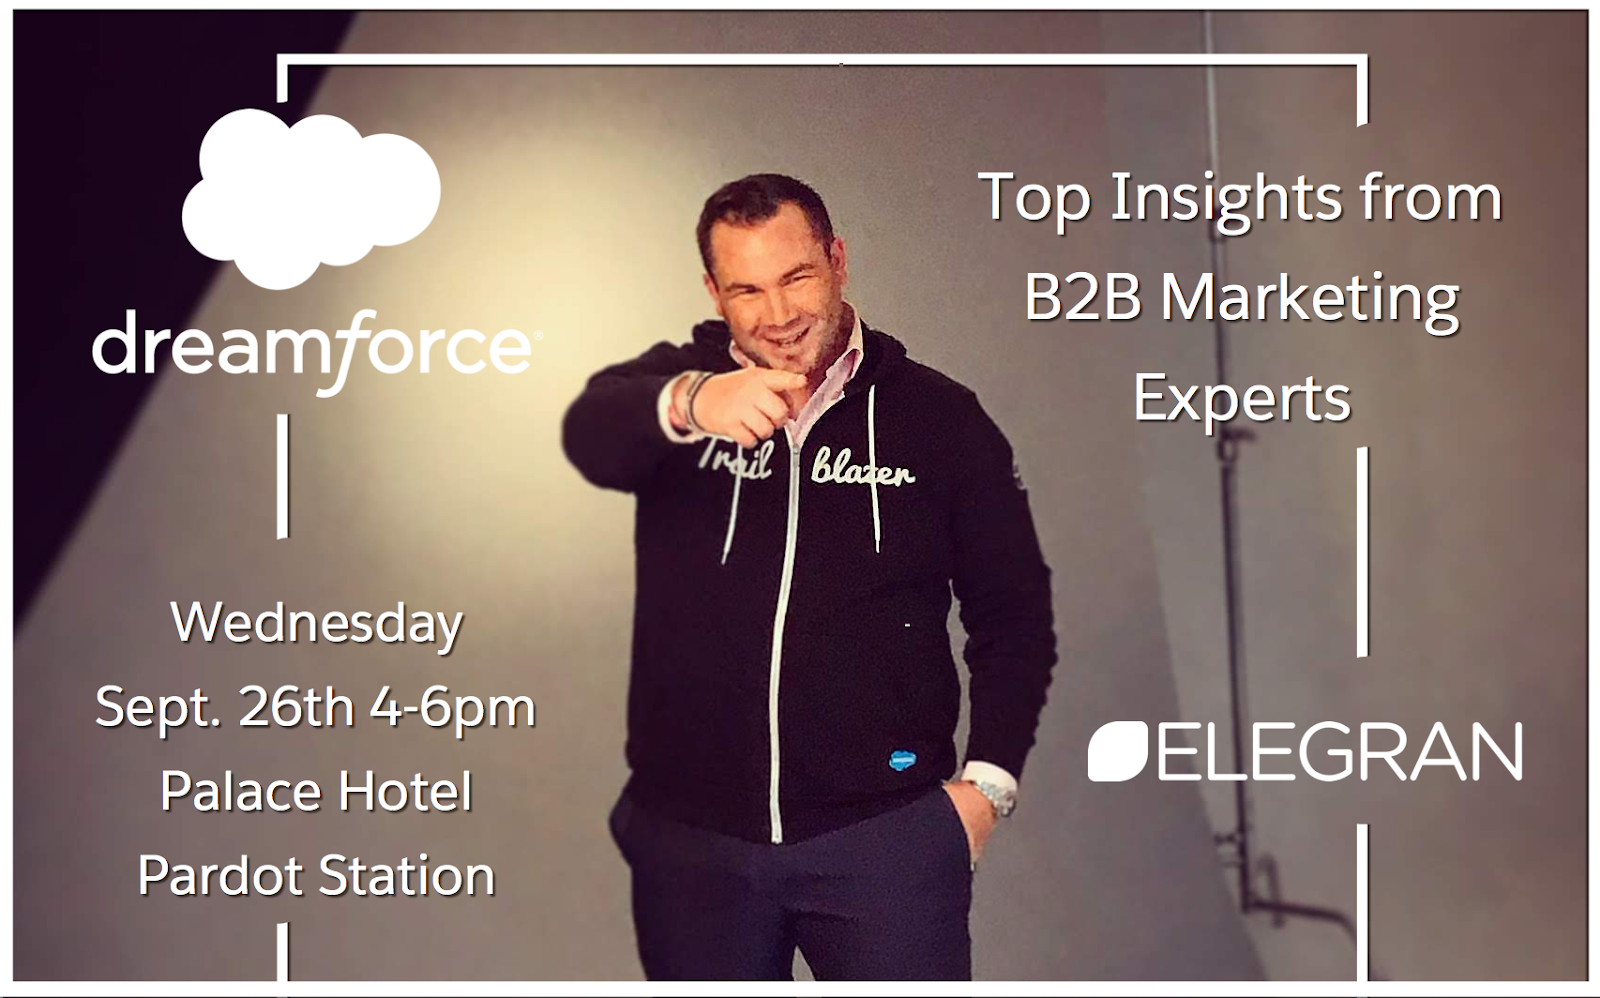 Tigh Loughhead's Top Insights from B2B Marketing Experts on Salesforce and Pardot